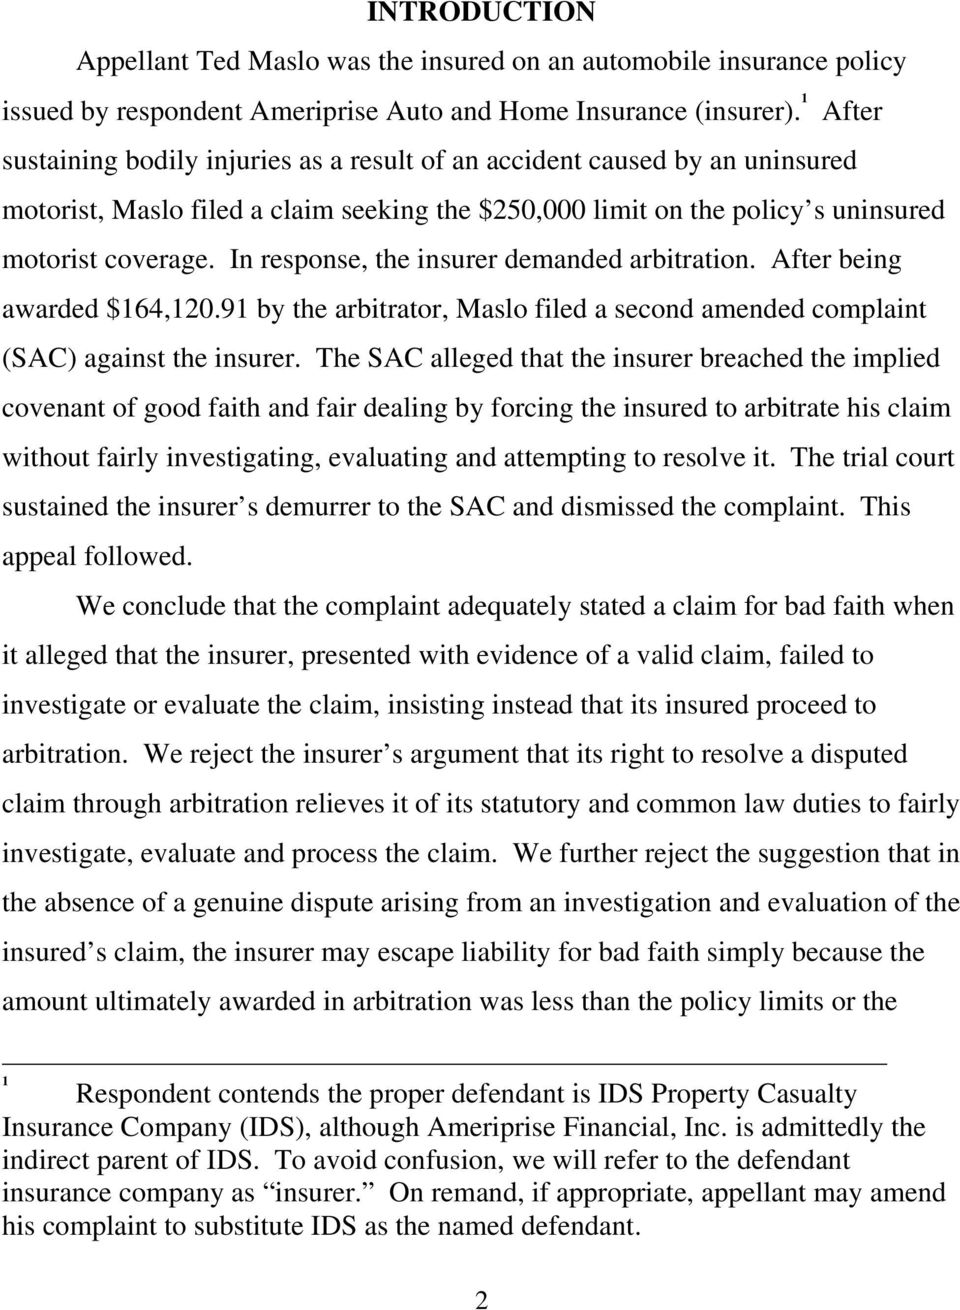 In response, the insurer demanded arbitration. After being awarded $164,120.91 by the arbitrator, Maslo filed a second amended complaint (SAC) against the insurer.